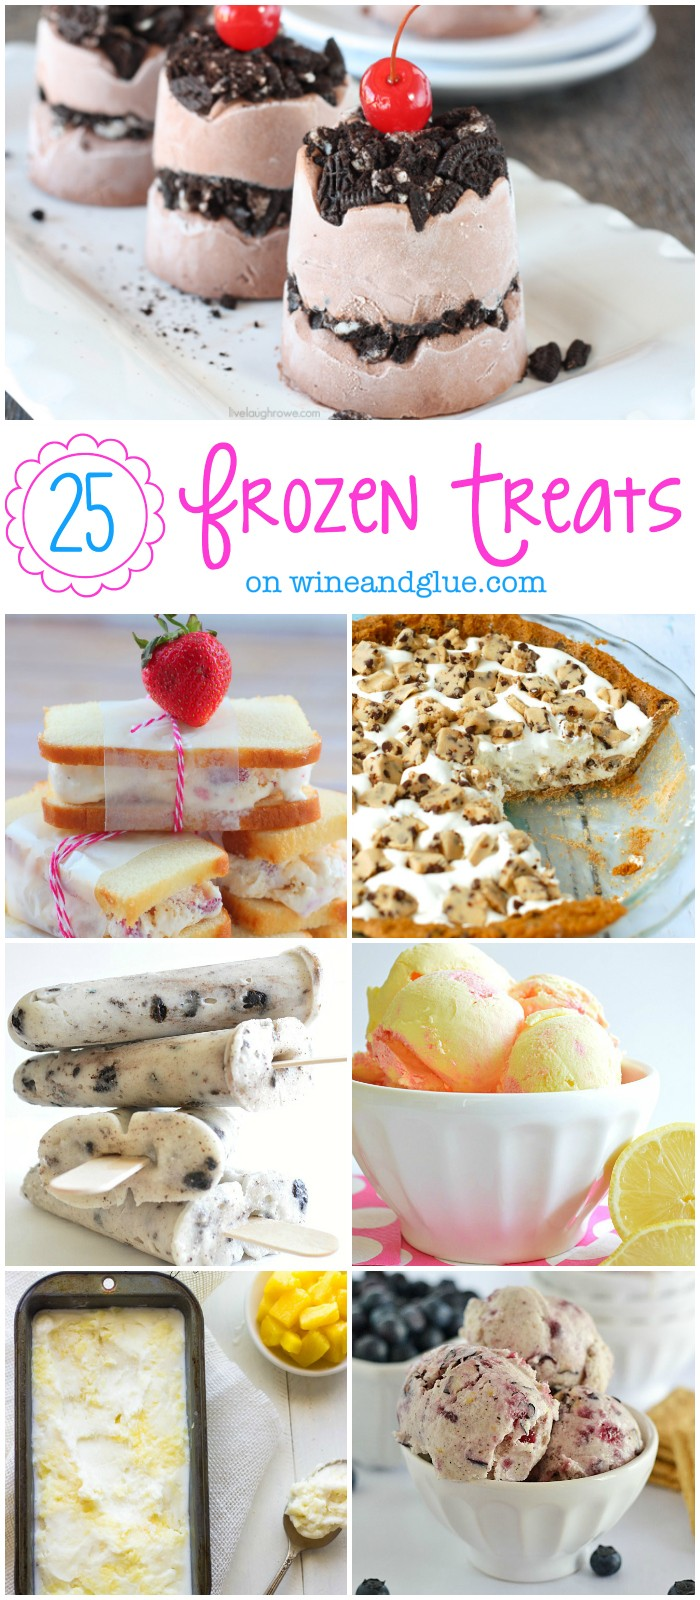 25 Frozen Treats on wineandglue.com